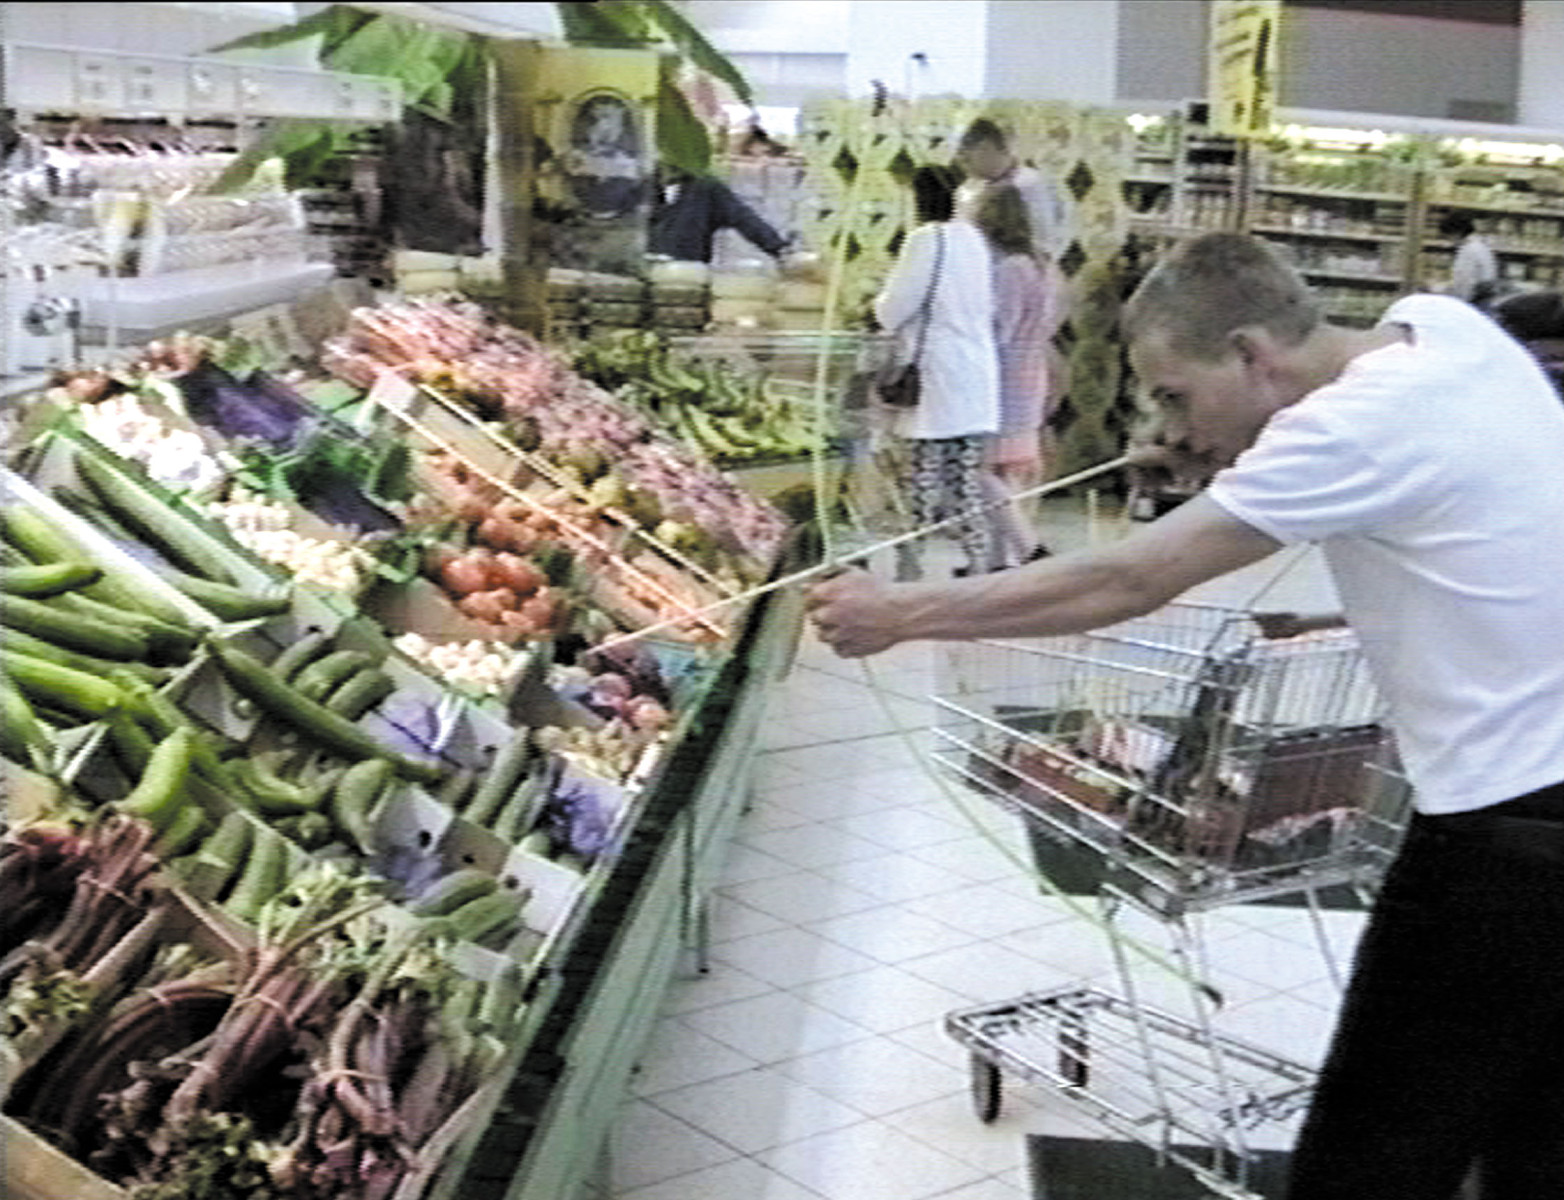 Die Jagd (1992) In the supermarket, Jankowski hunts for his groceries with bow and arrow, but not without paying for everything correctly at the cashier.